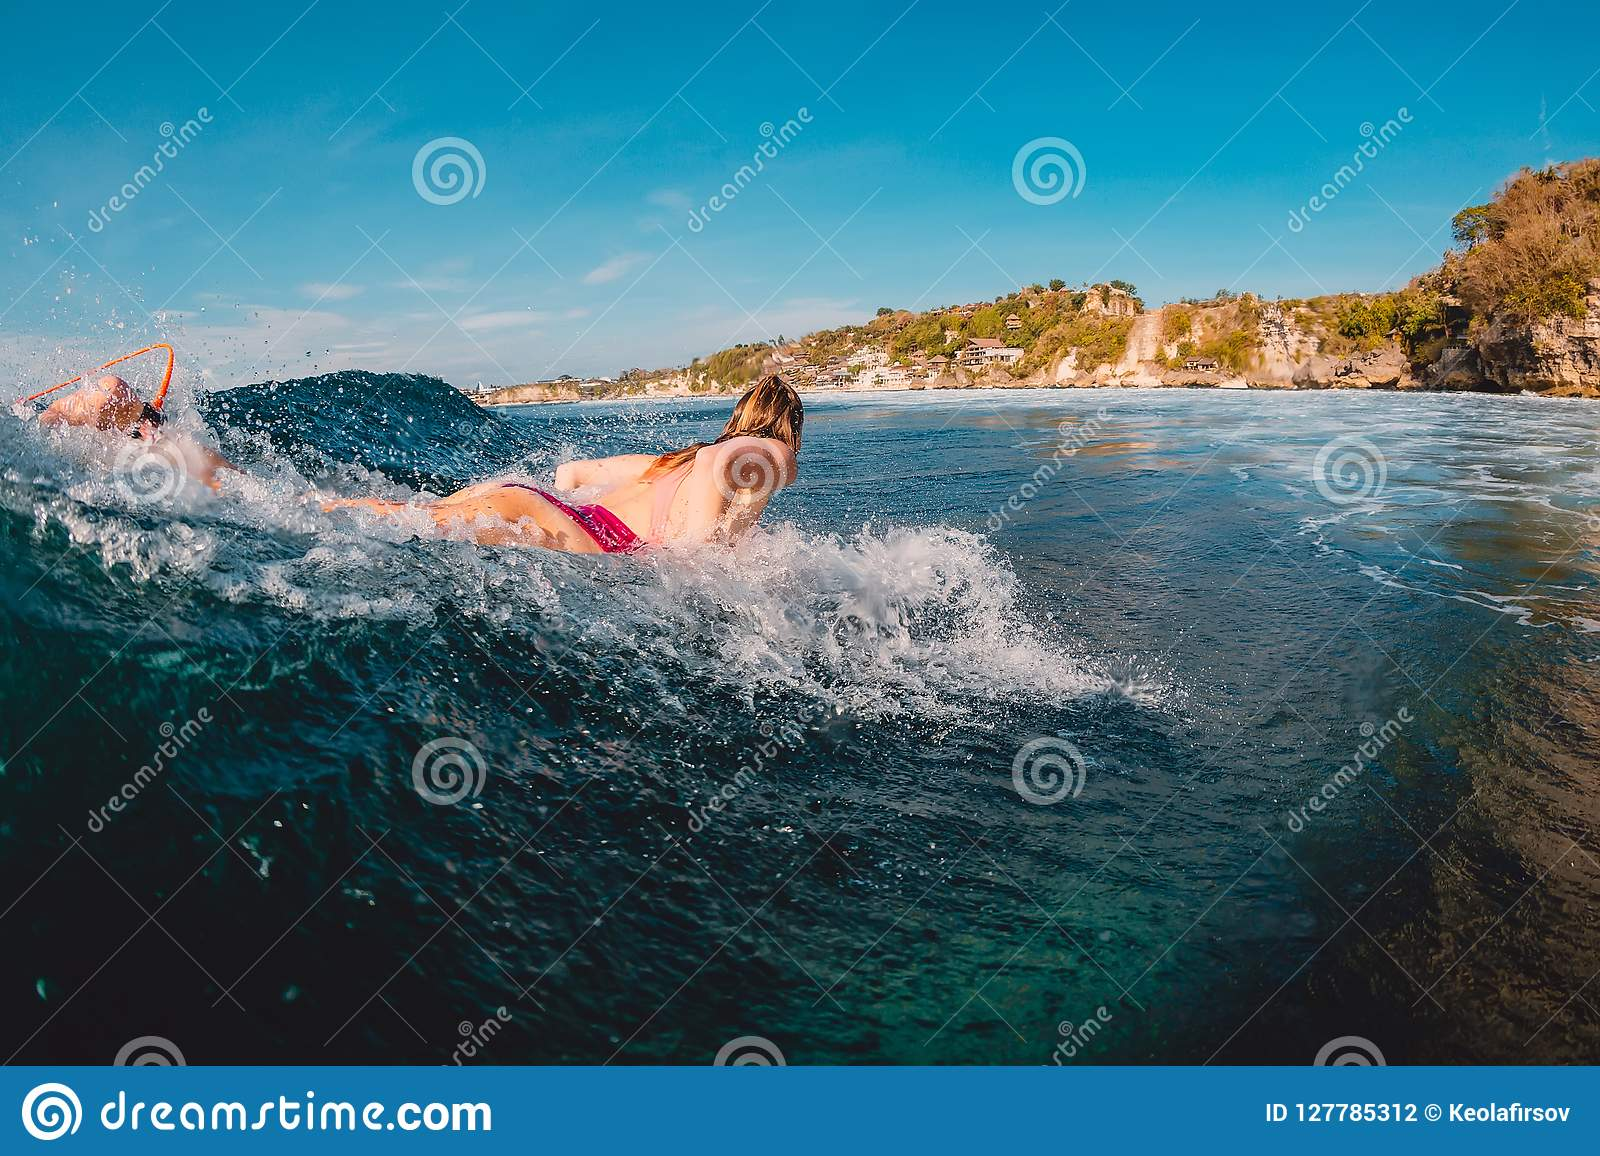 Surfer woman at surfboard on wave. Surf girl in ocean.